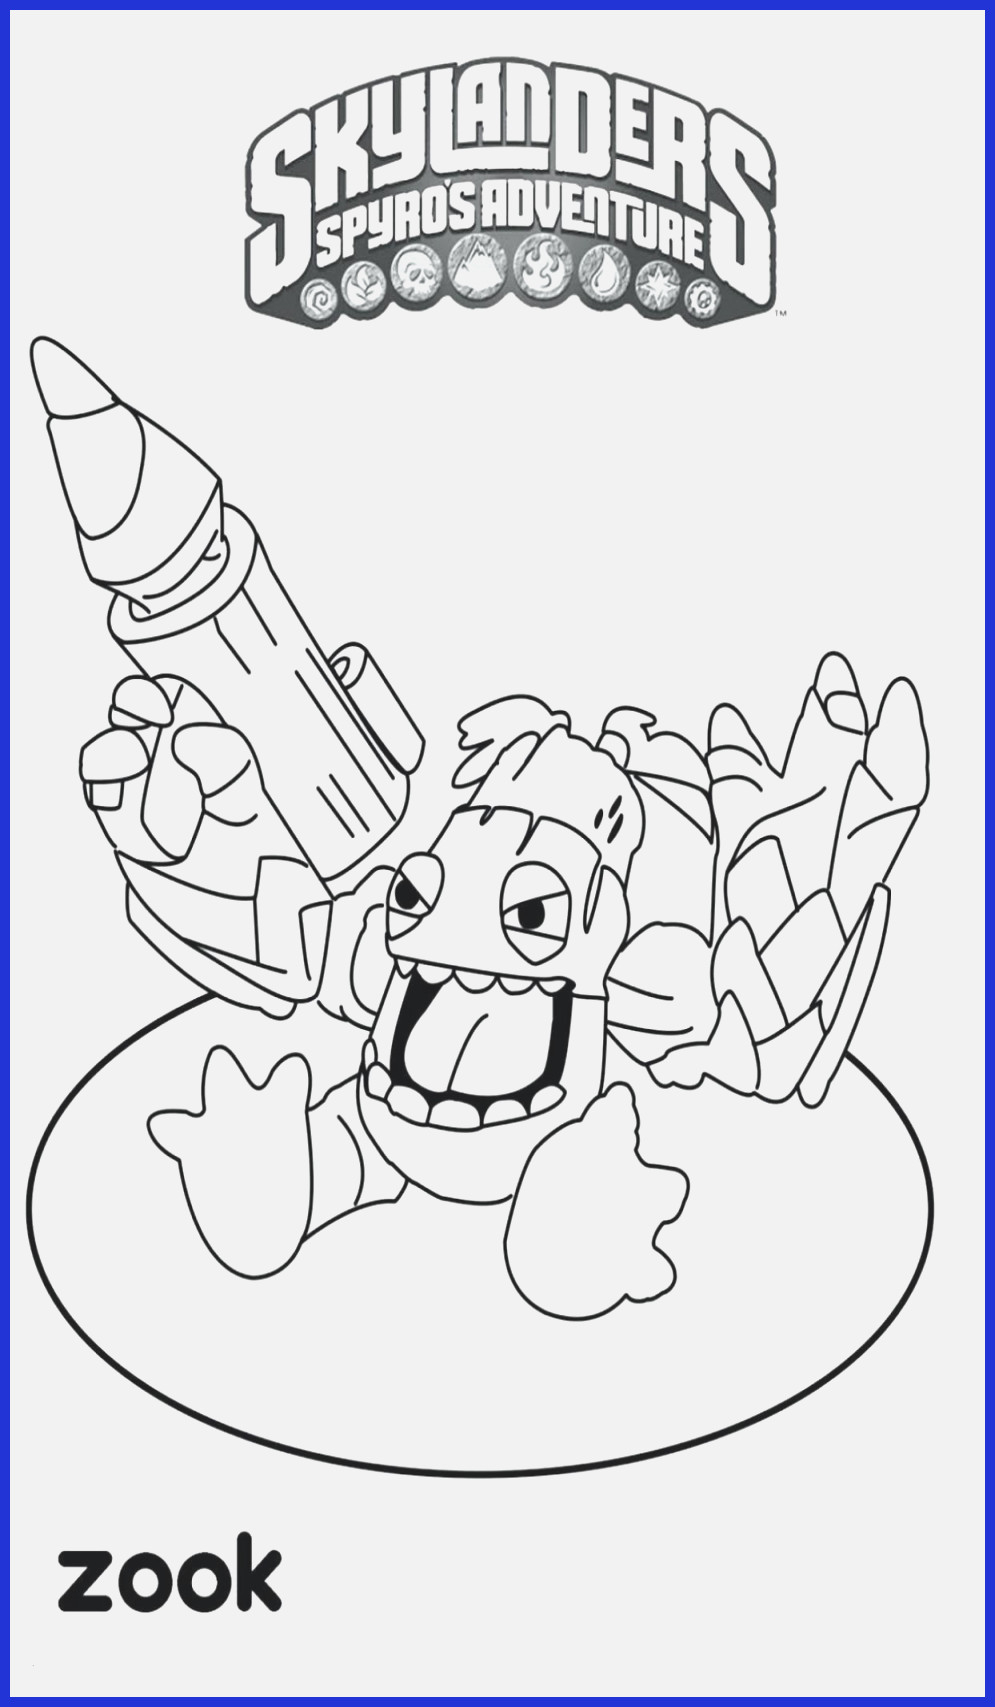 Santa Claus In Sleigh Coloring Page Santa Sleigh Coloring Pages Santa Claus His Sleigh Coloring Pages